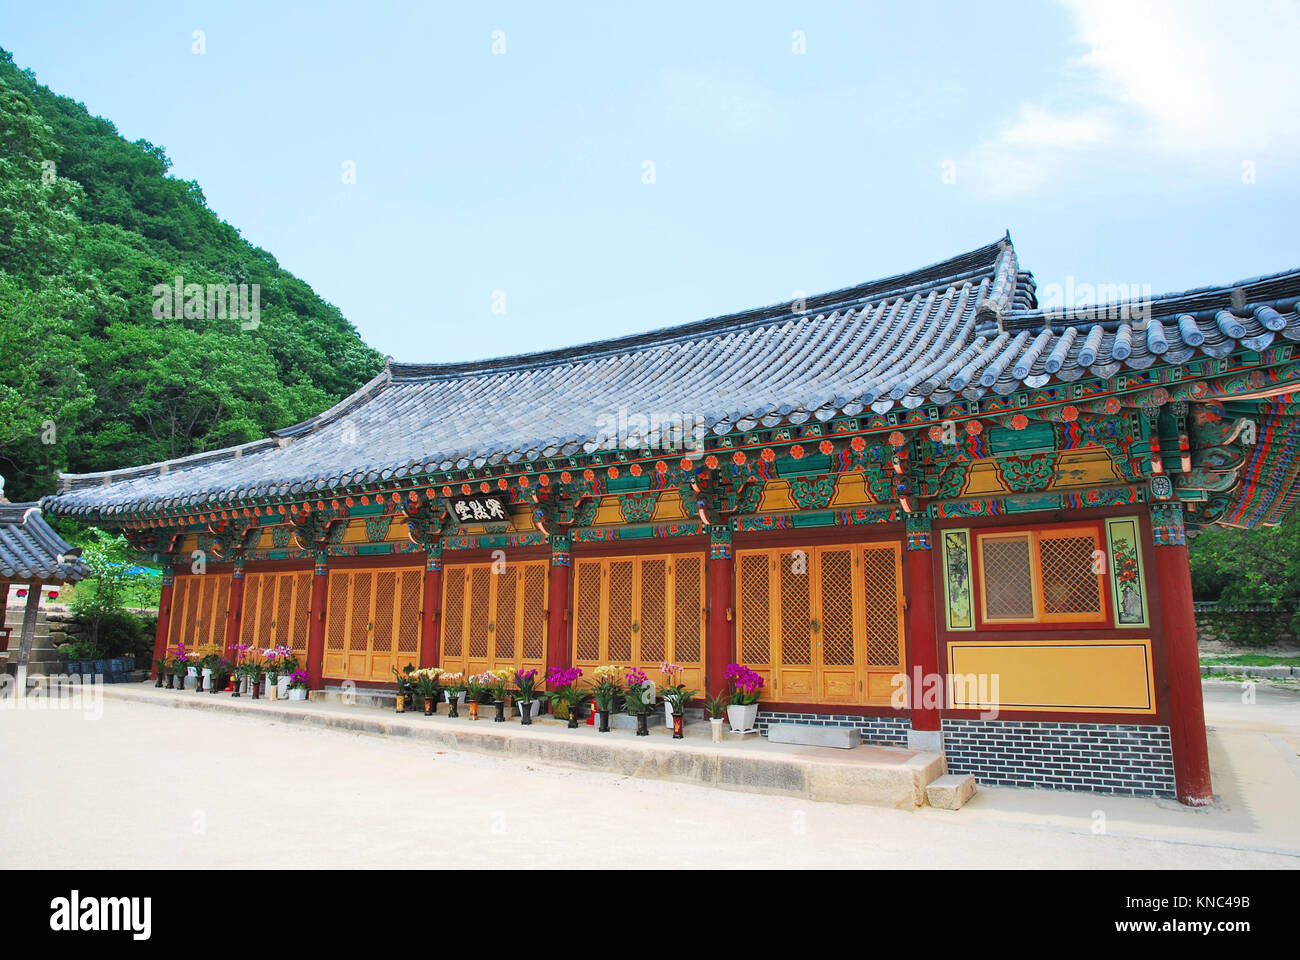 Korean Styled Detailed Architecture Of The Main Building Symbol Of